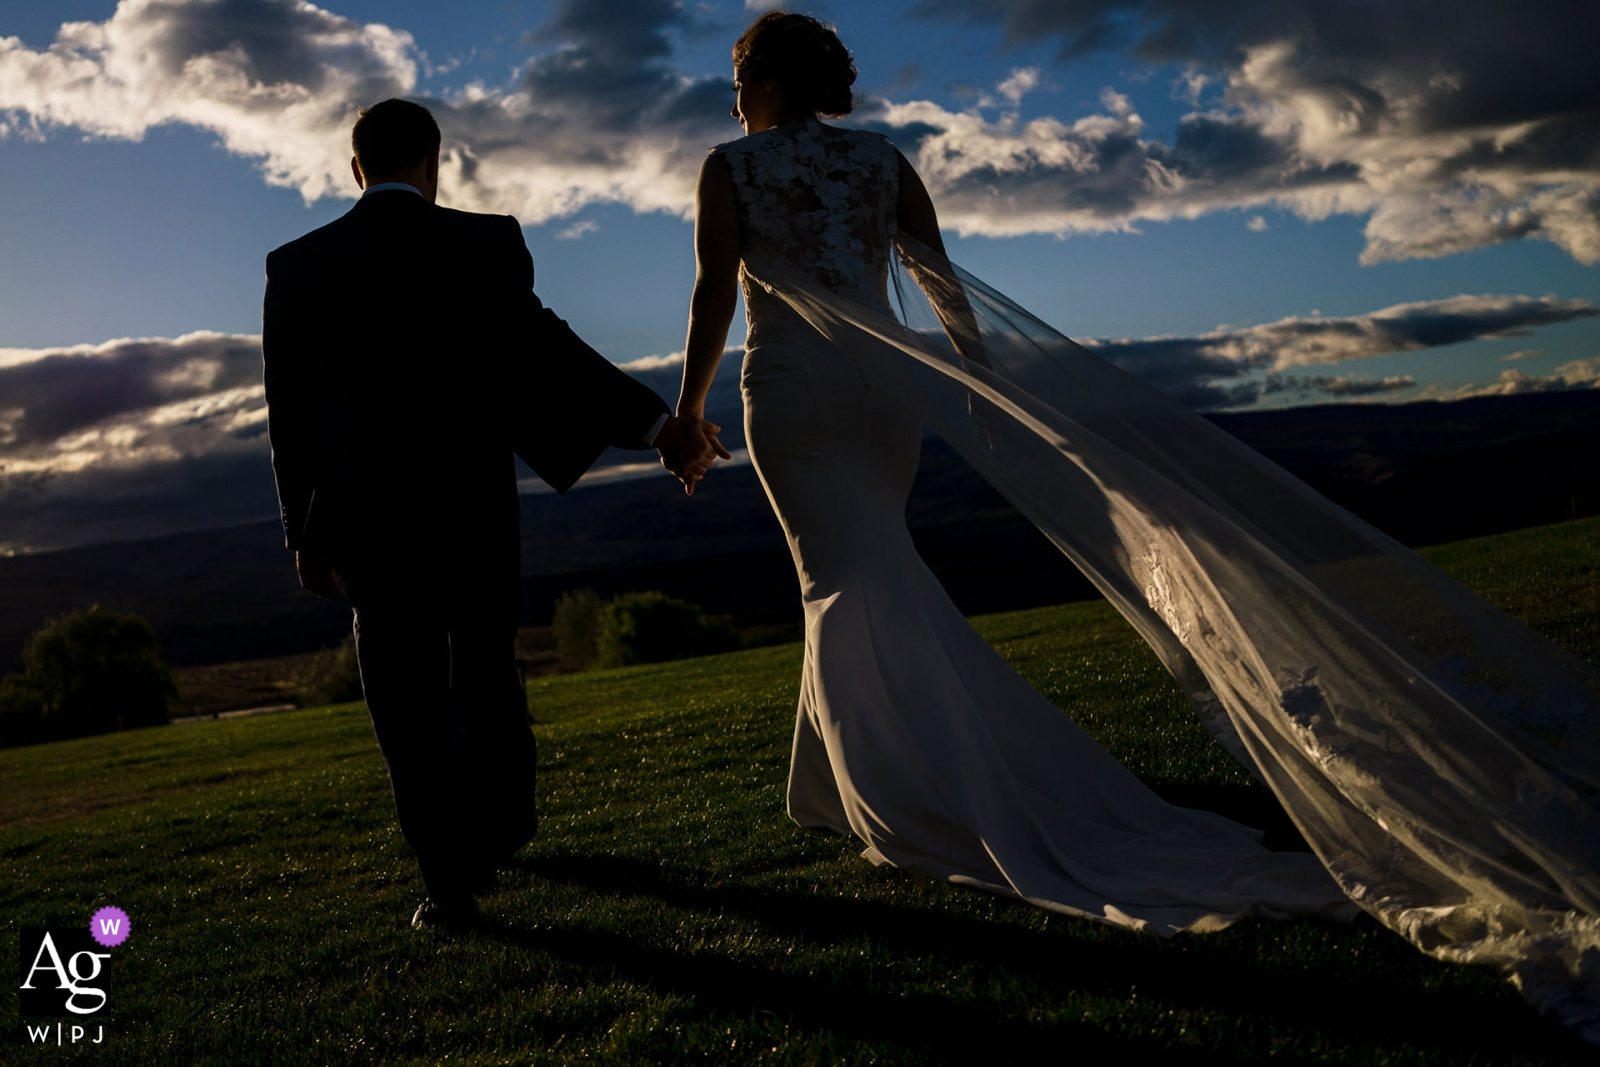 Wedding photo of couple walking into sun with clouds | Wedding day portraits captured in Seattle, Washington